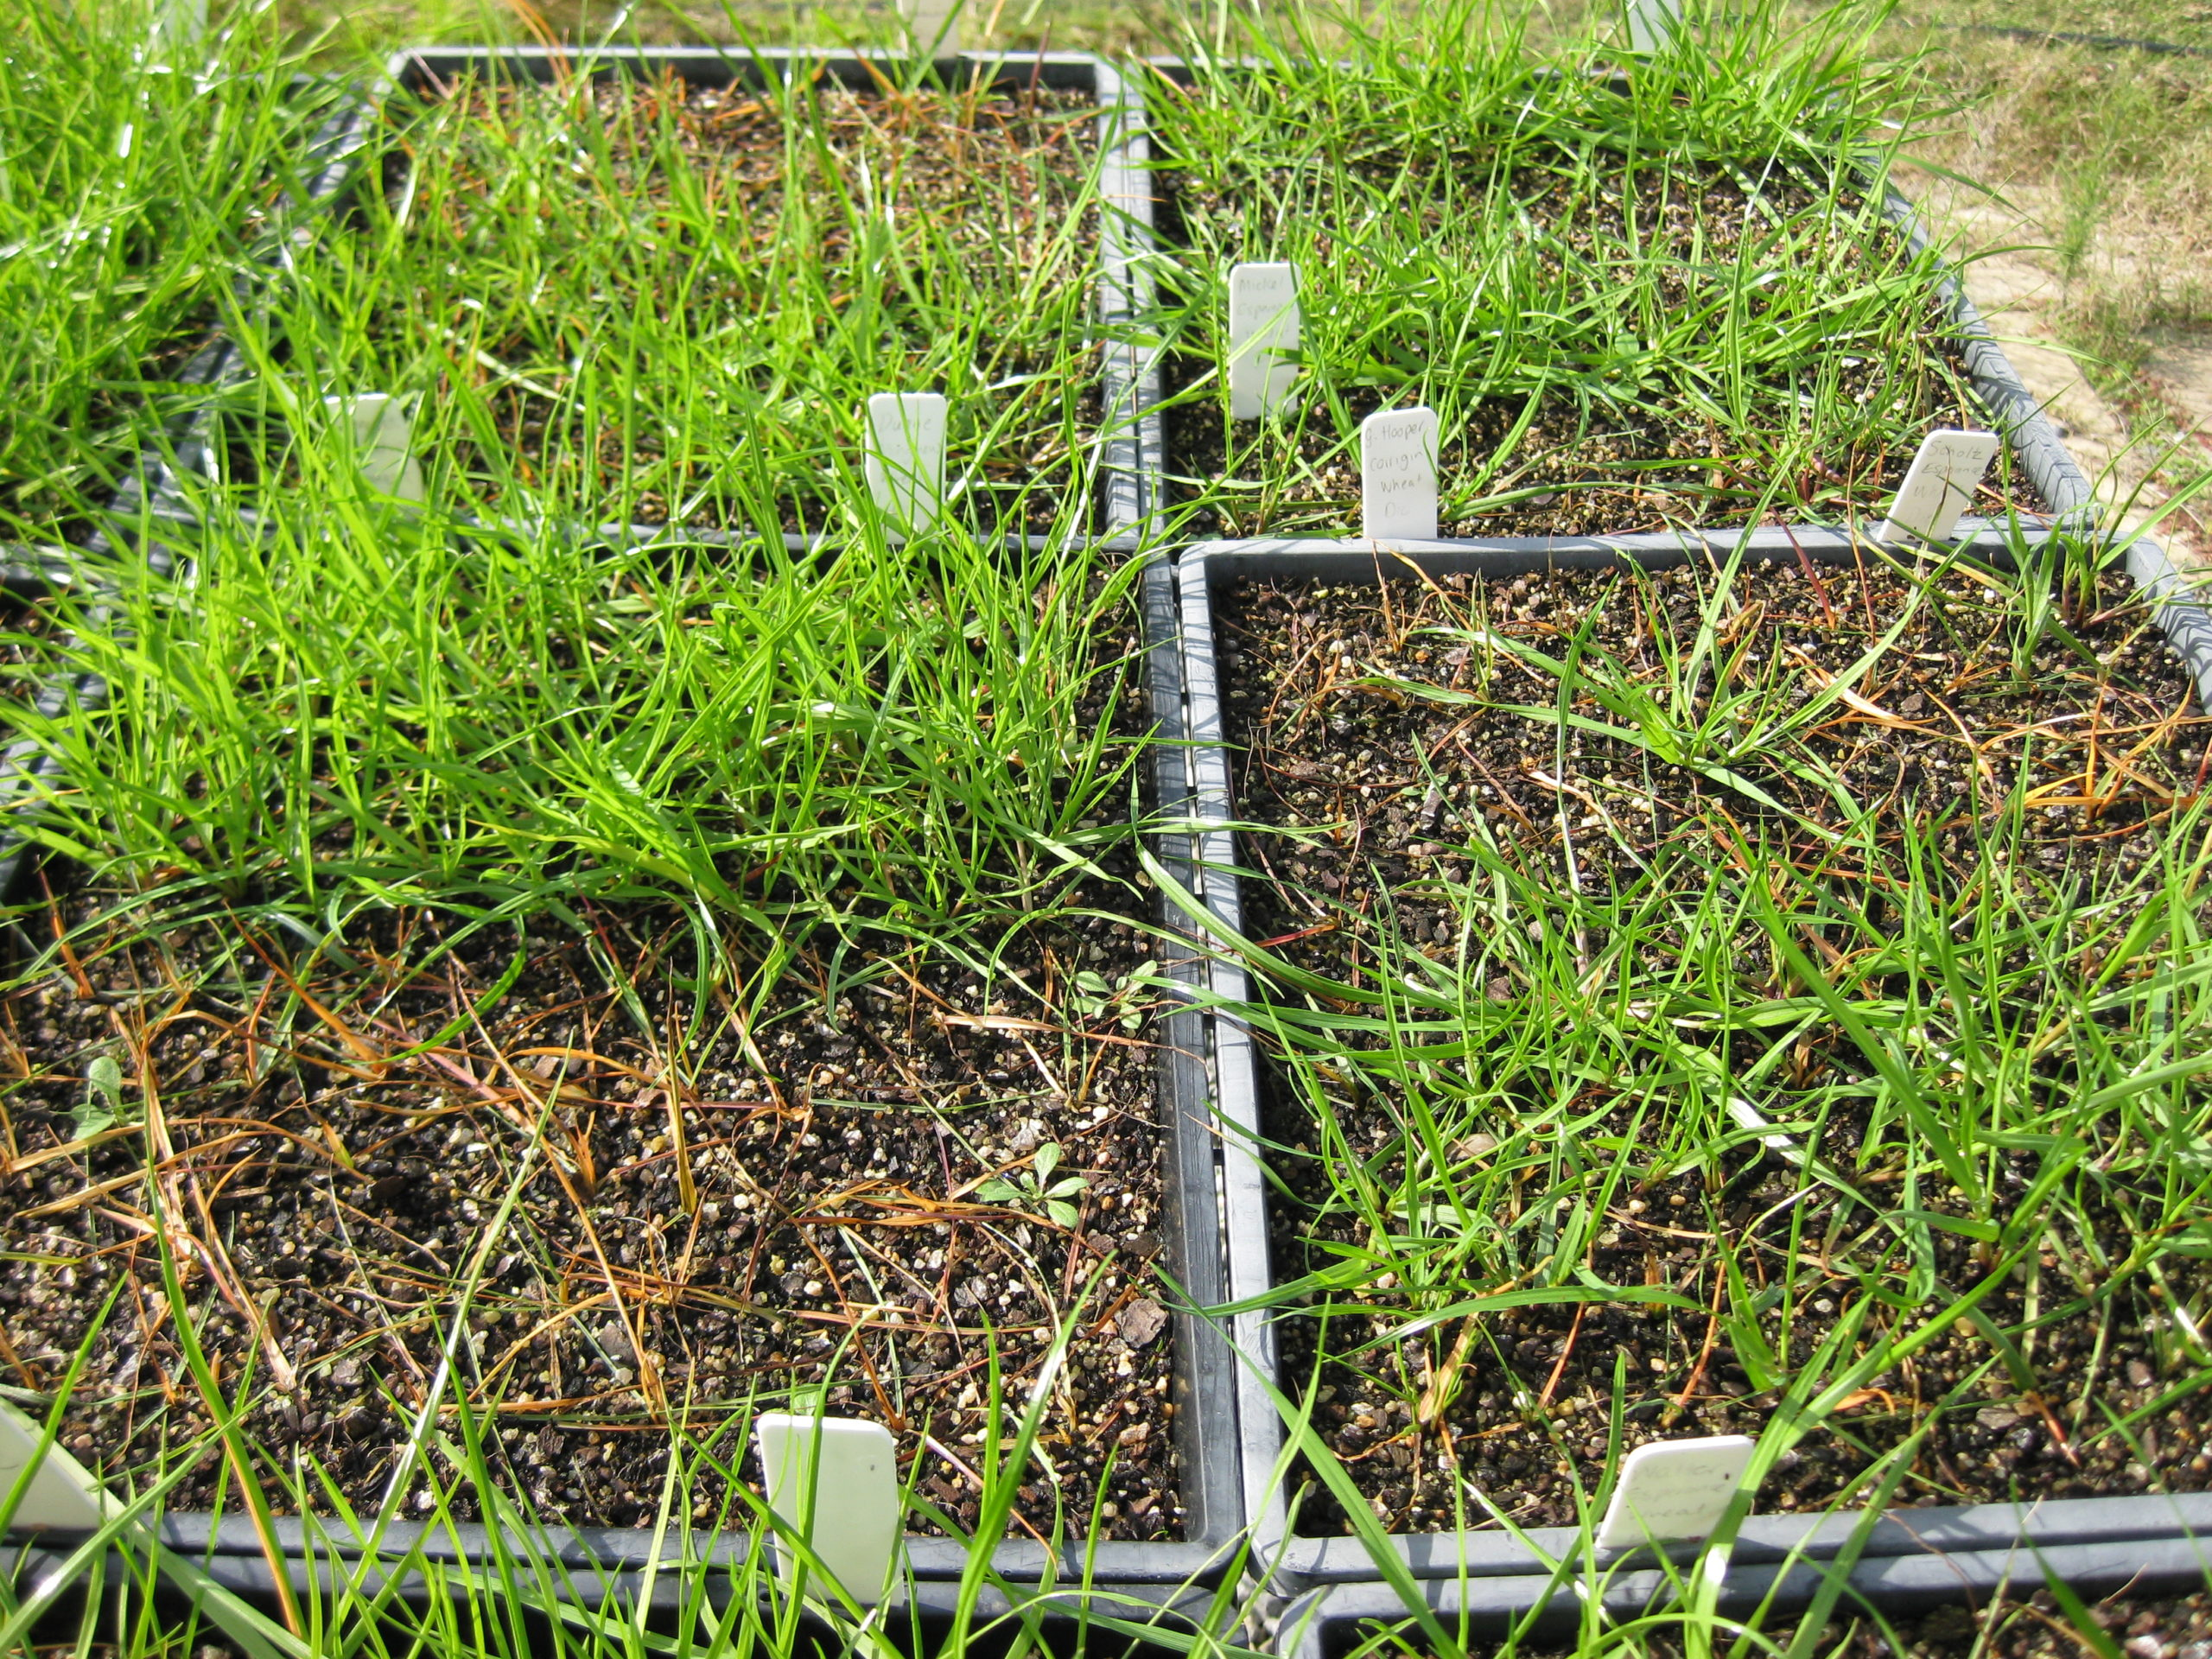 annual-ryegrass-tested-for-herbicide-resistance